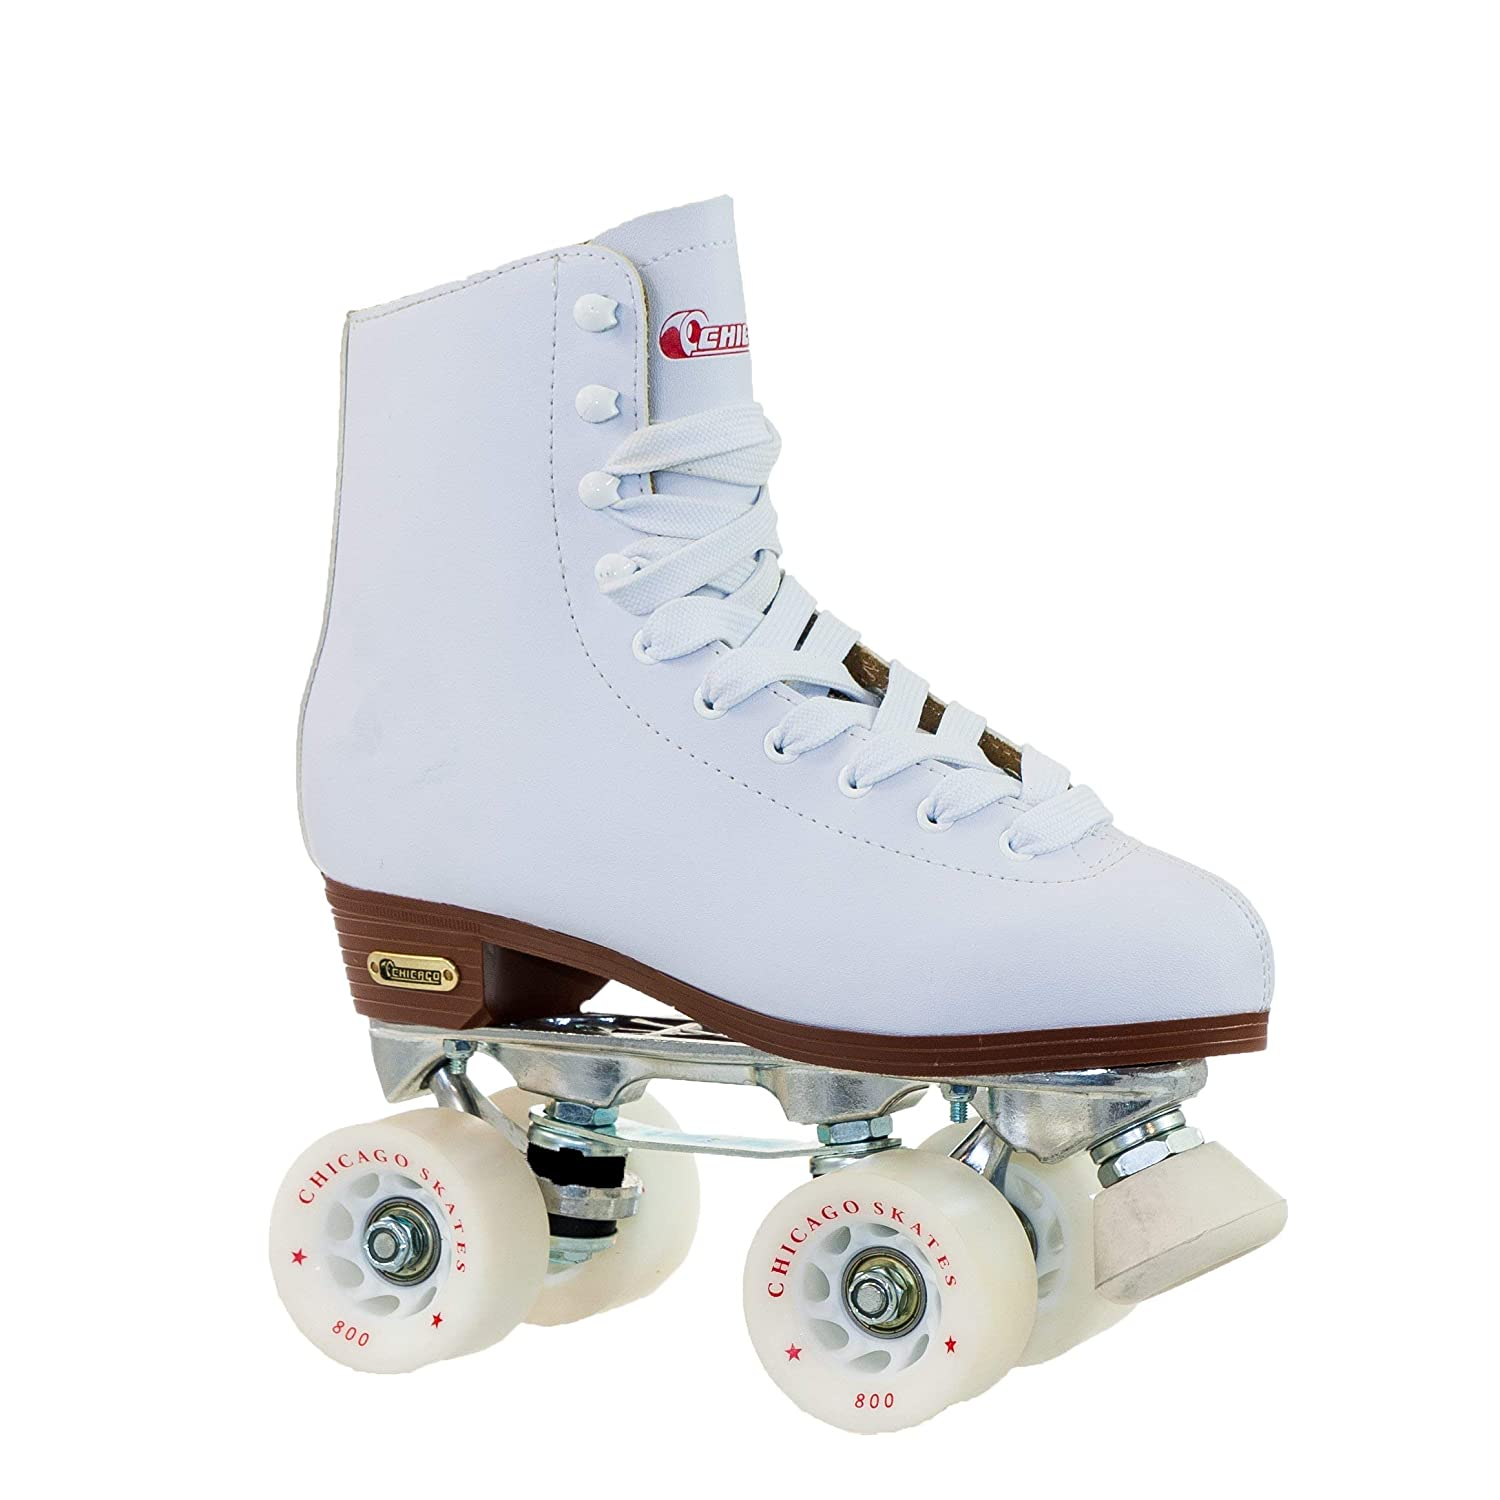 Chicago Women s Leather Lined Rink Roller Skate, White Renewed